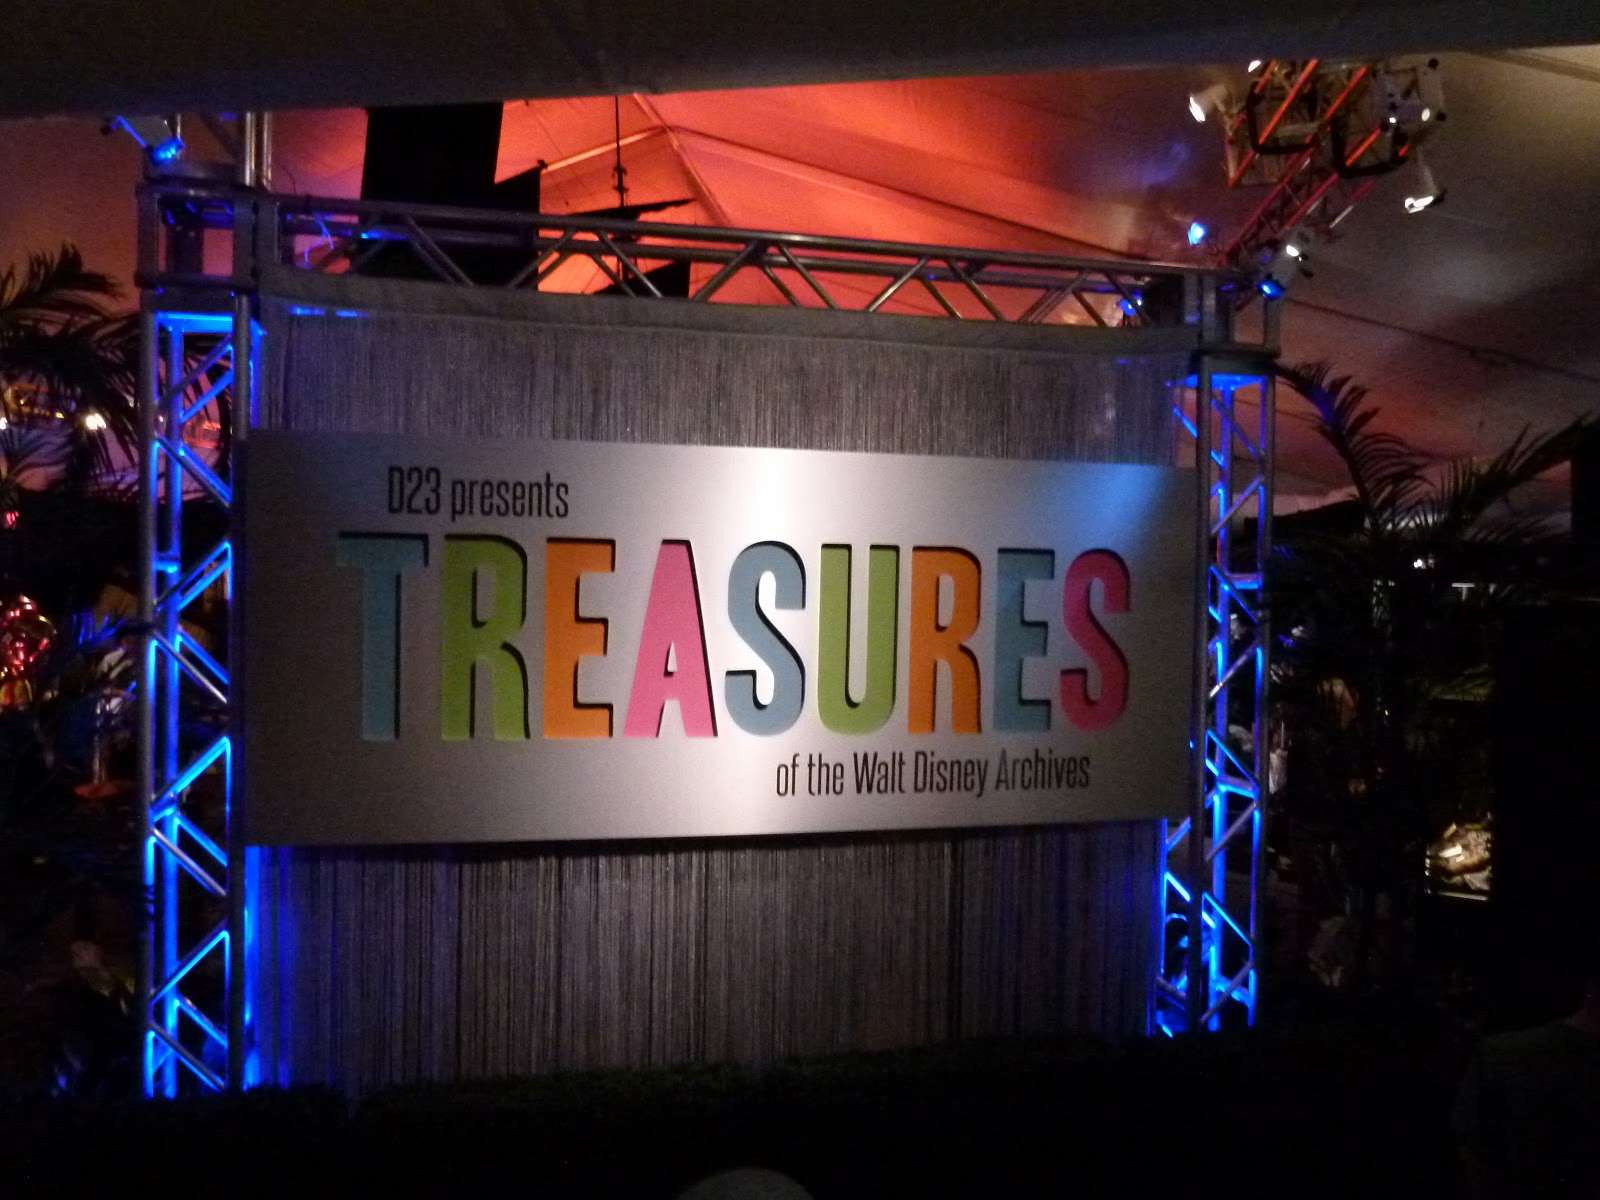 Things To Do In Los Angeles D23 Presents Treasures Of The Walt